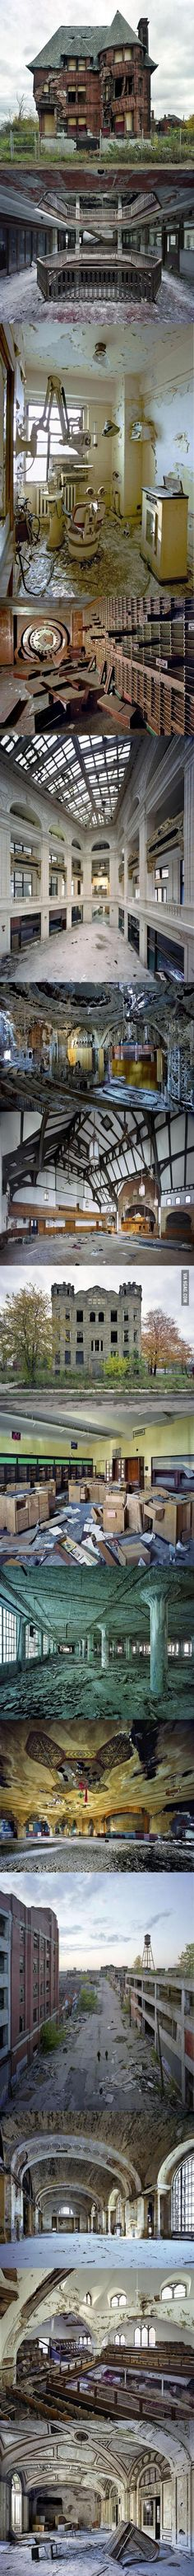 Detroit is the world's biggest ghost city. I wouldn't want to live in Detroit per say, but I love the idea of taking an abandoned house and remodeling it to be inhabited again. I love the stone one 8 pictures down.